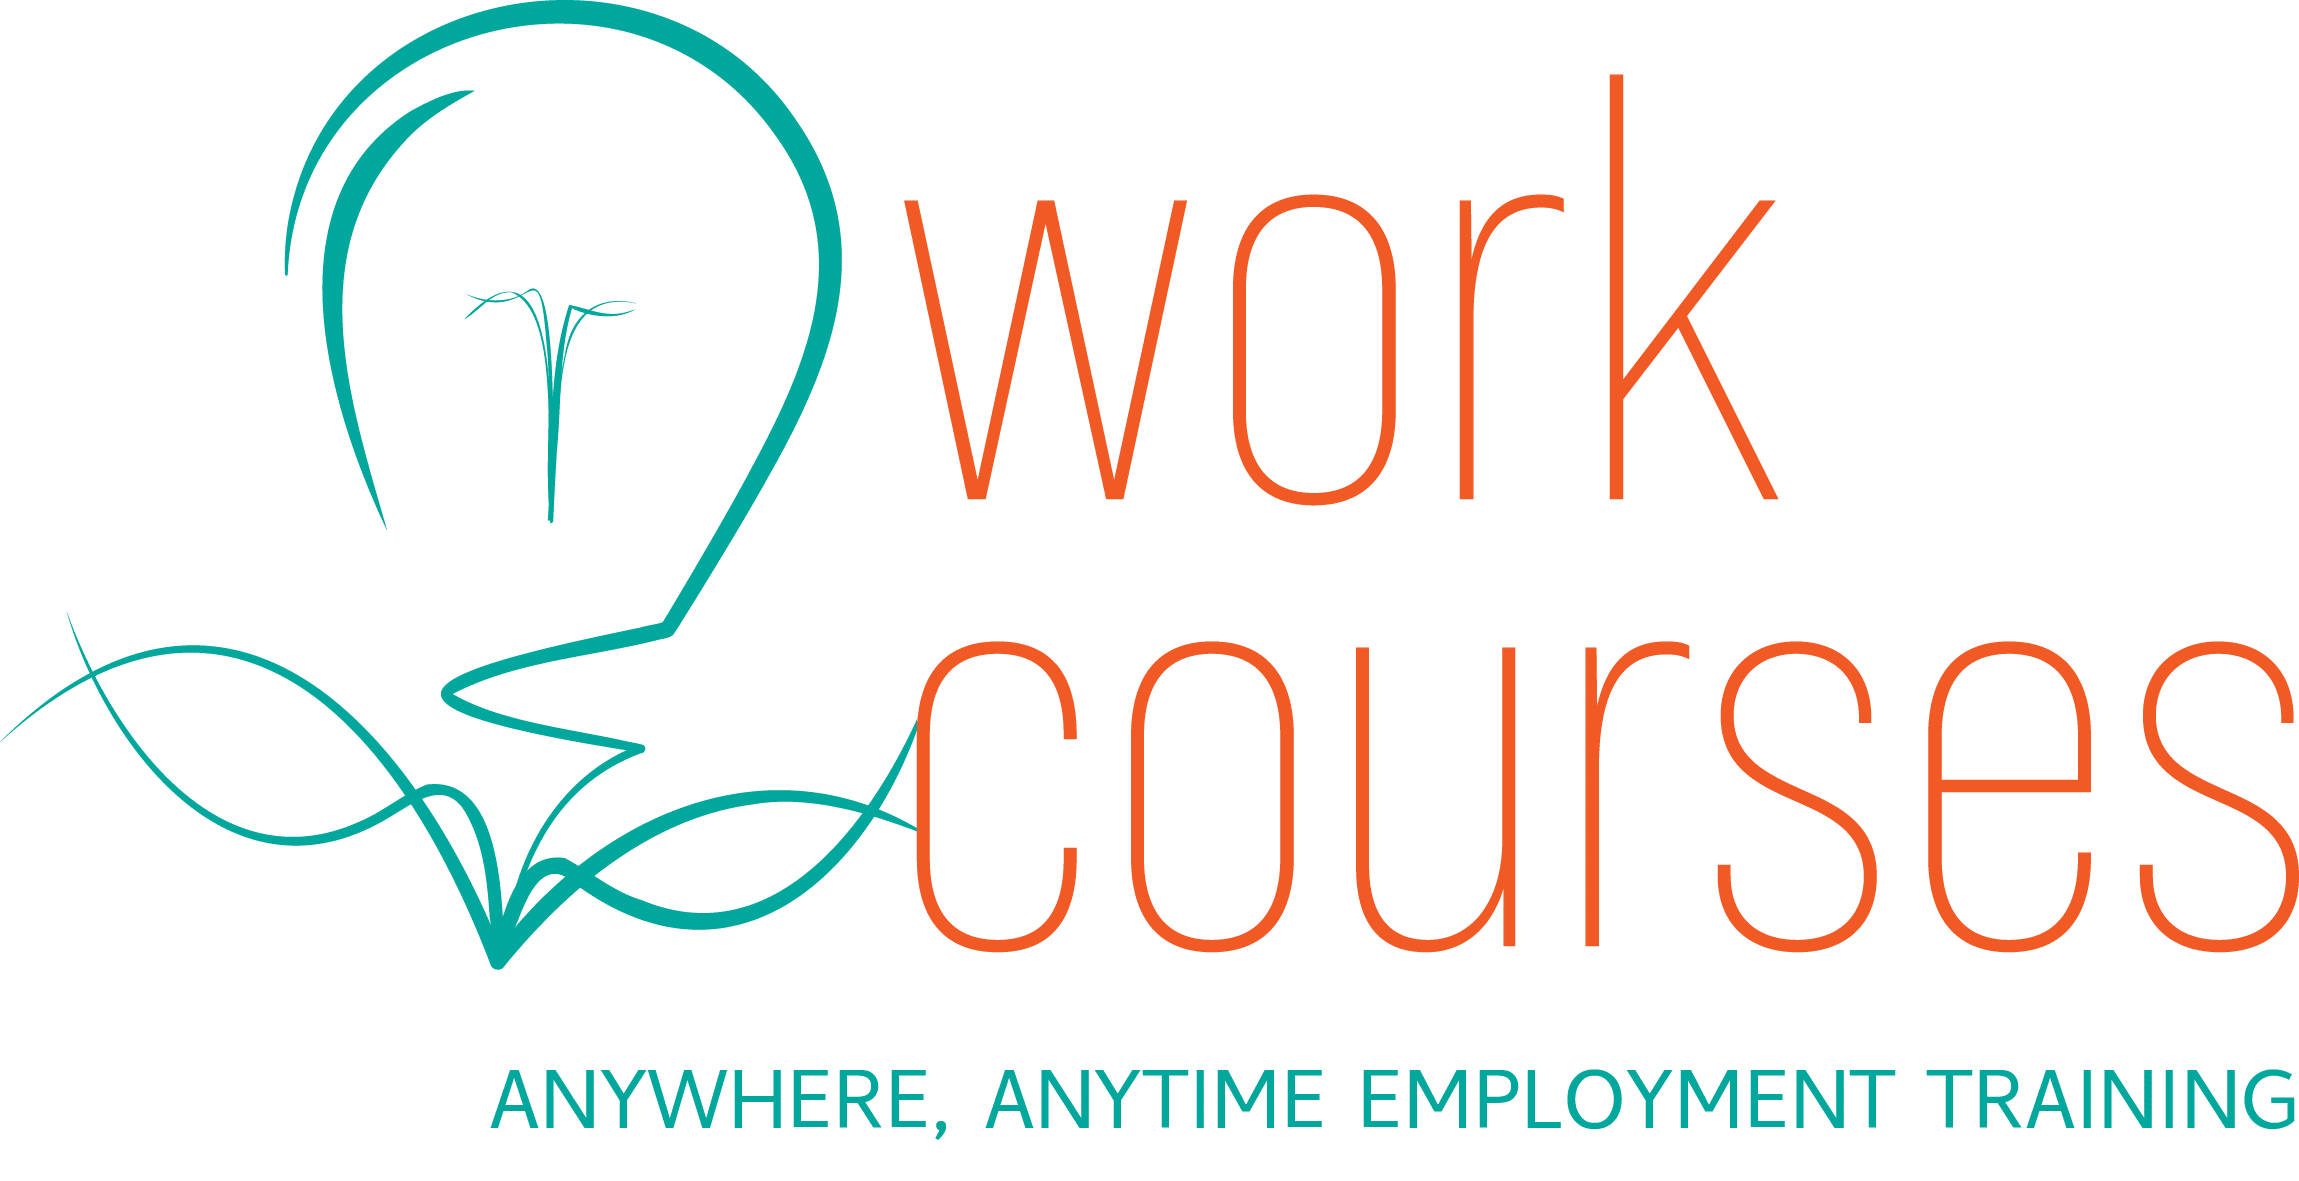 Work Courses